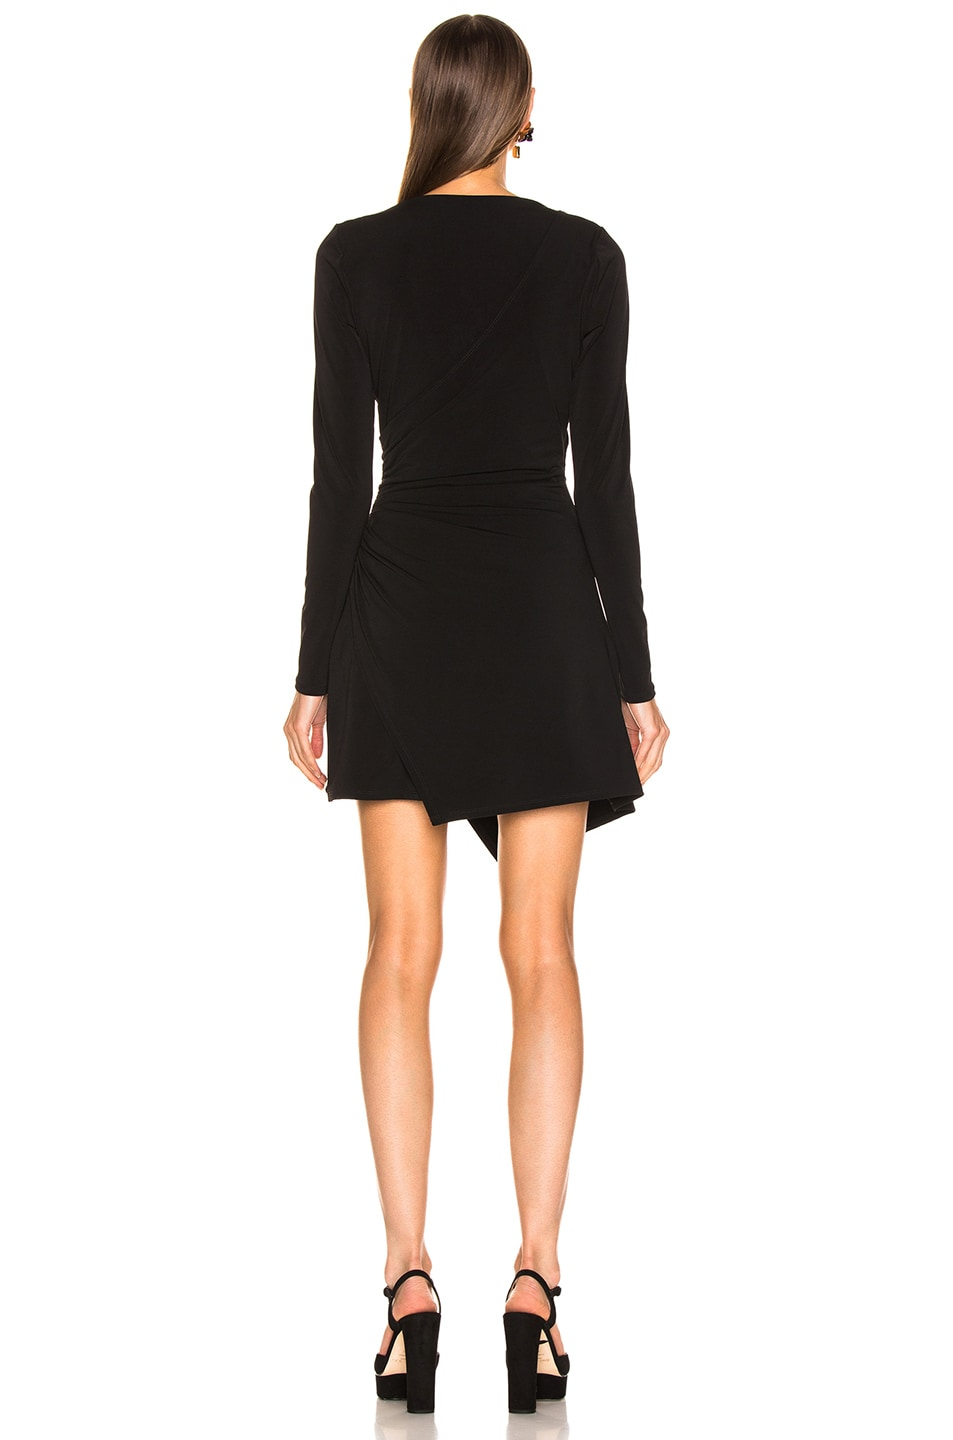 Image 4 of Cinq a Sept Coralie Dress in Black